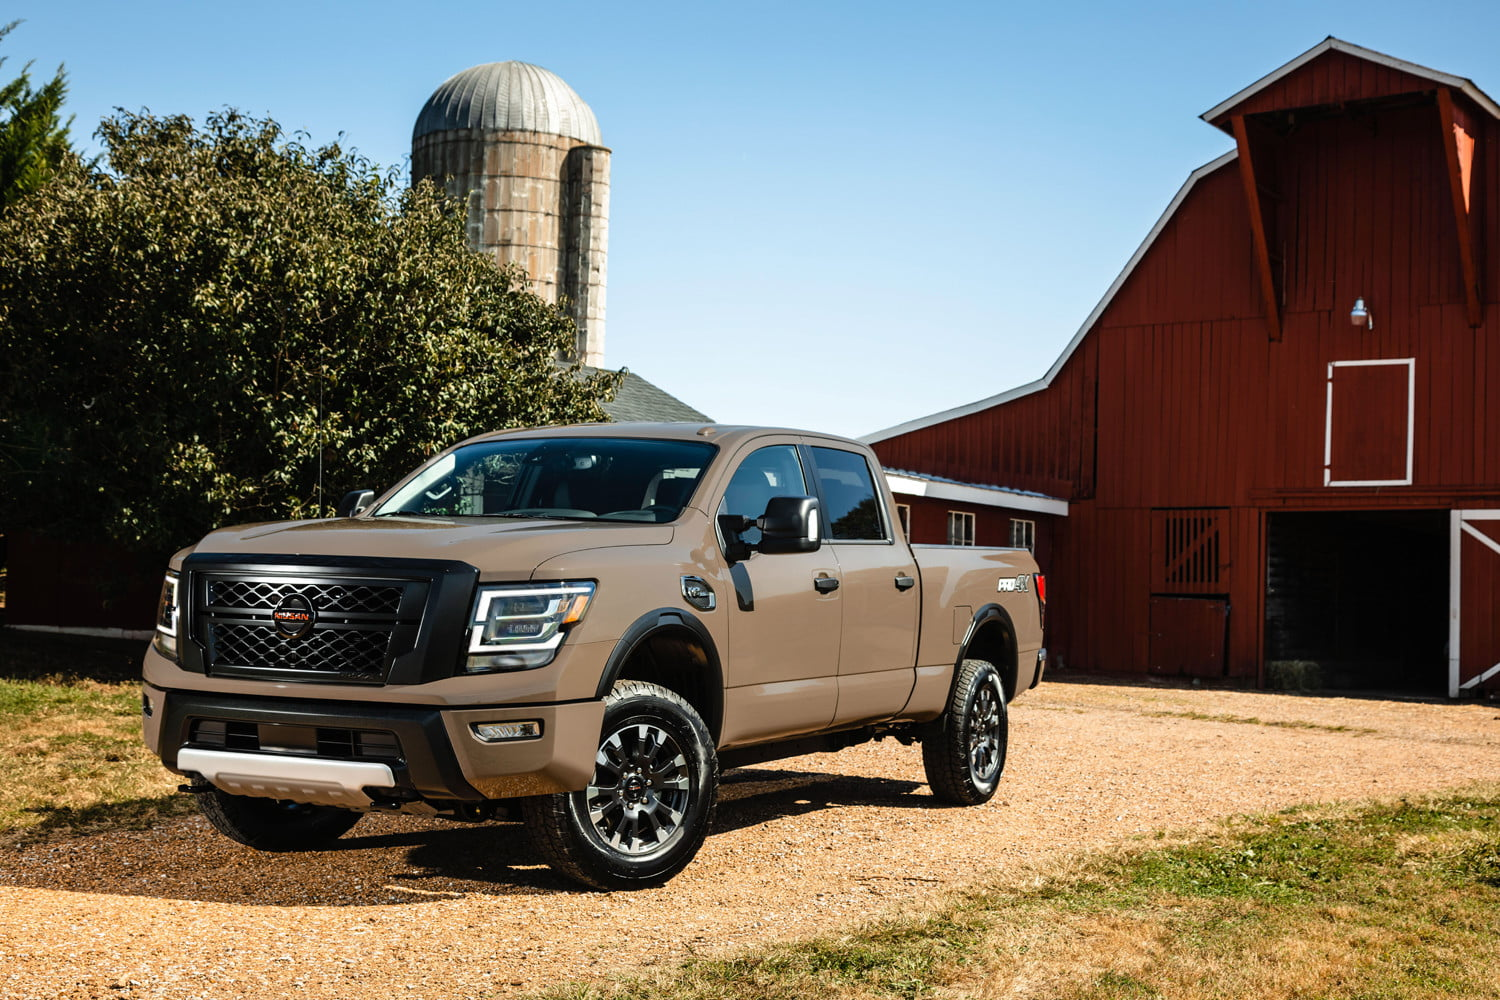 2020 nissan titan xd trim levels pricing and tech announced 1